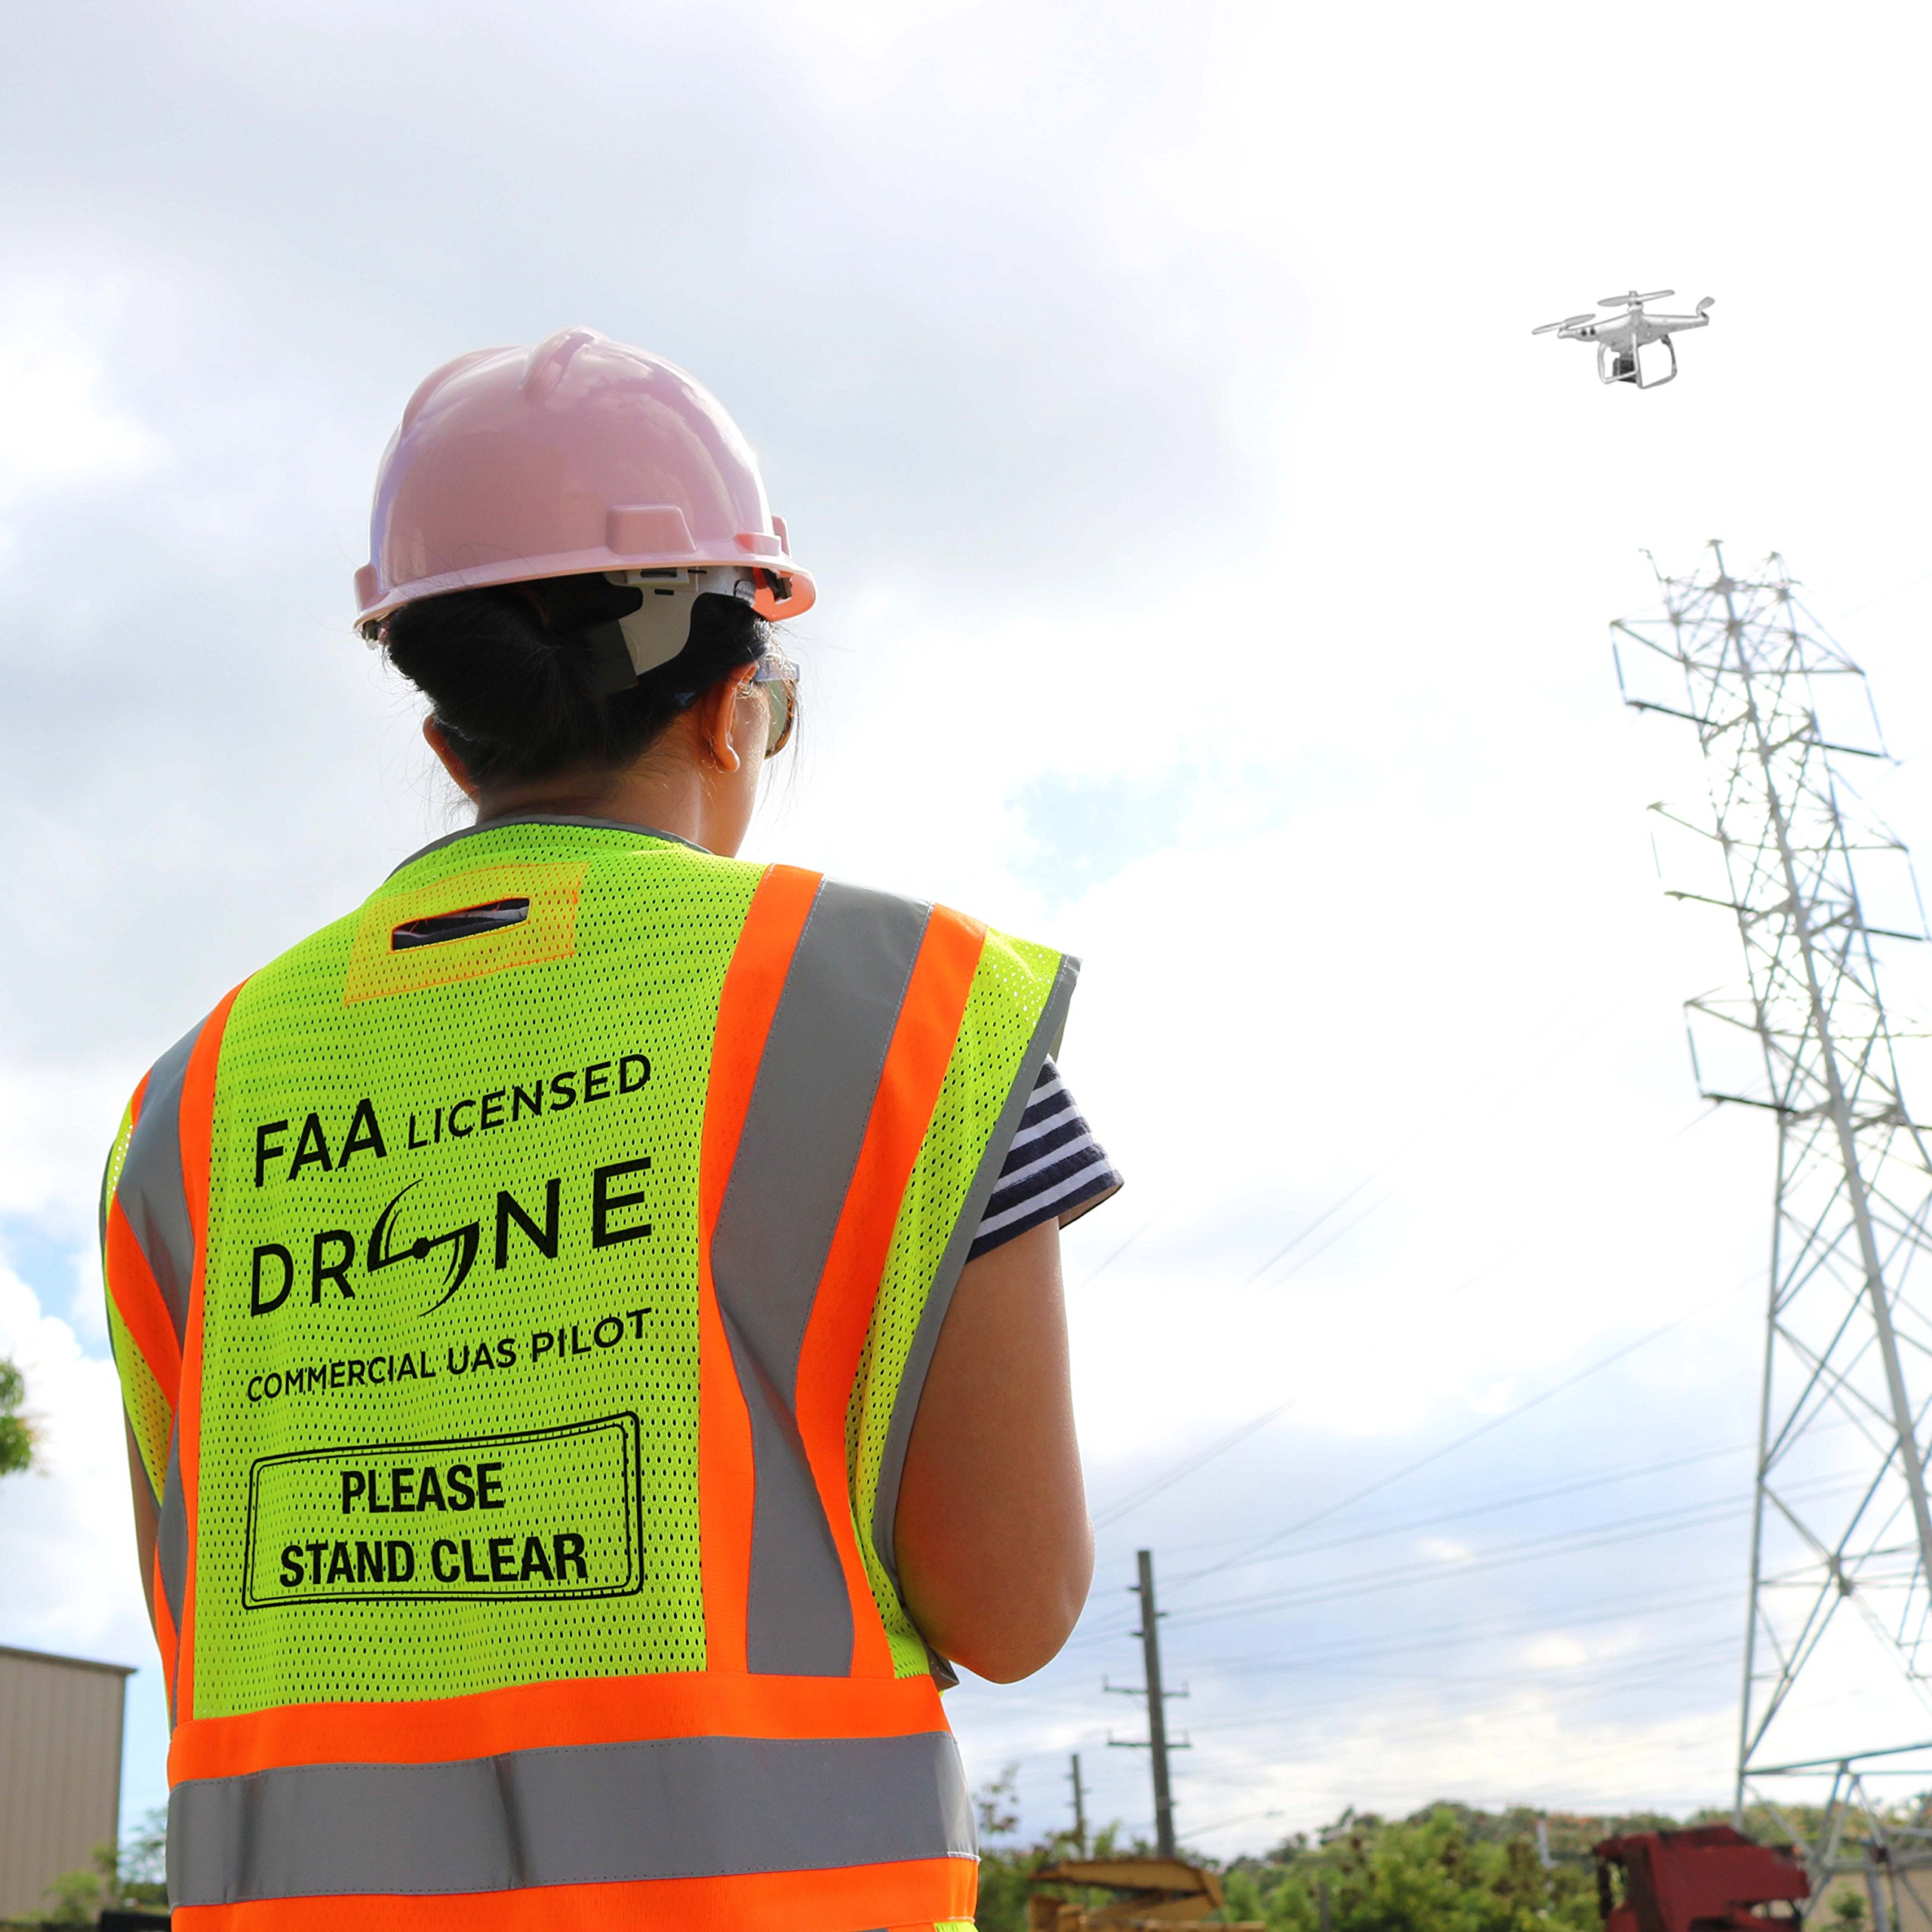 KwikSafety PILOT | Drone Safety Vest | Class 2 ANSI Compliant FAA Licensed | 360° High Visibility Reflective UAG Work Wear | Hi Vis Certified Commercial Pilot Men & Women Regular to Oversized | XL by KwikSafety (Image #6)